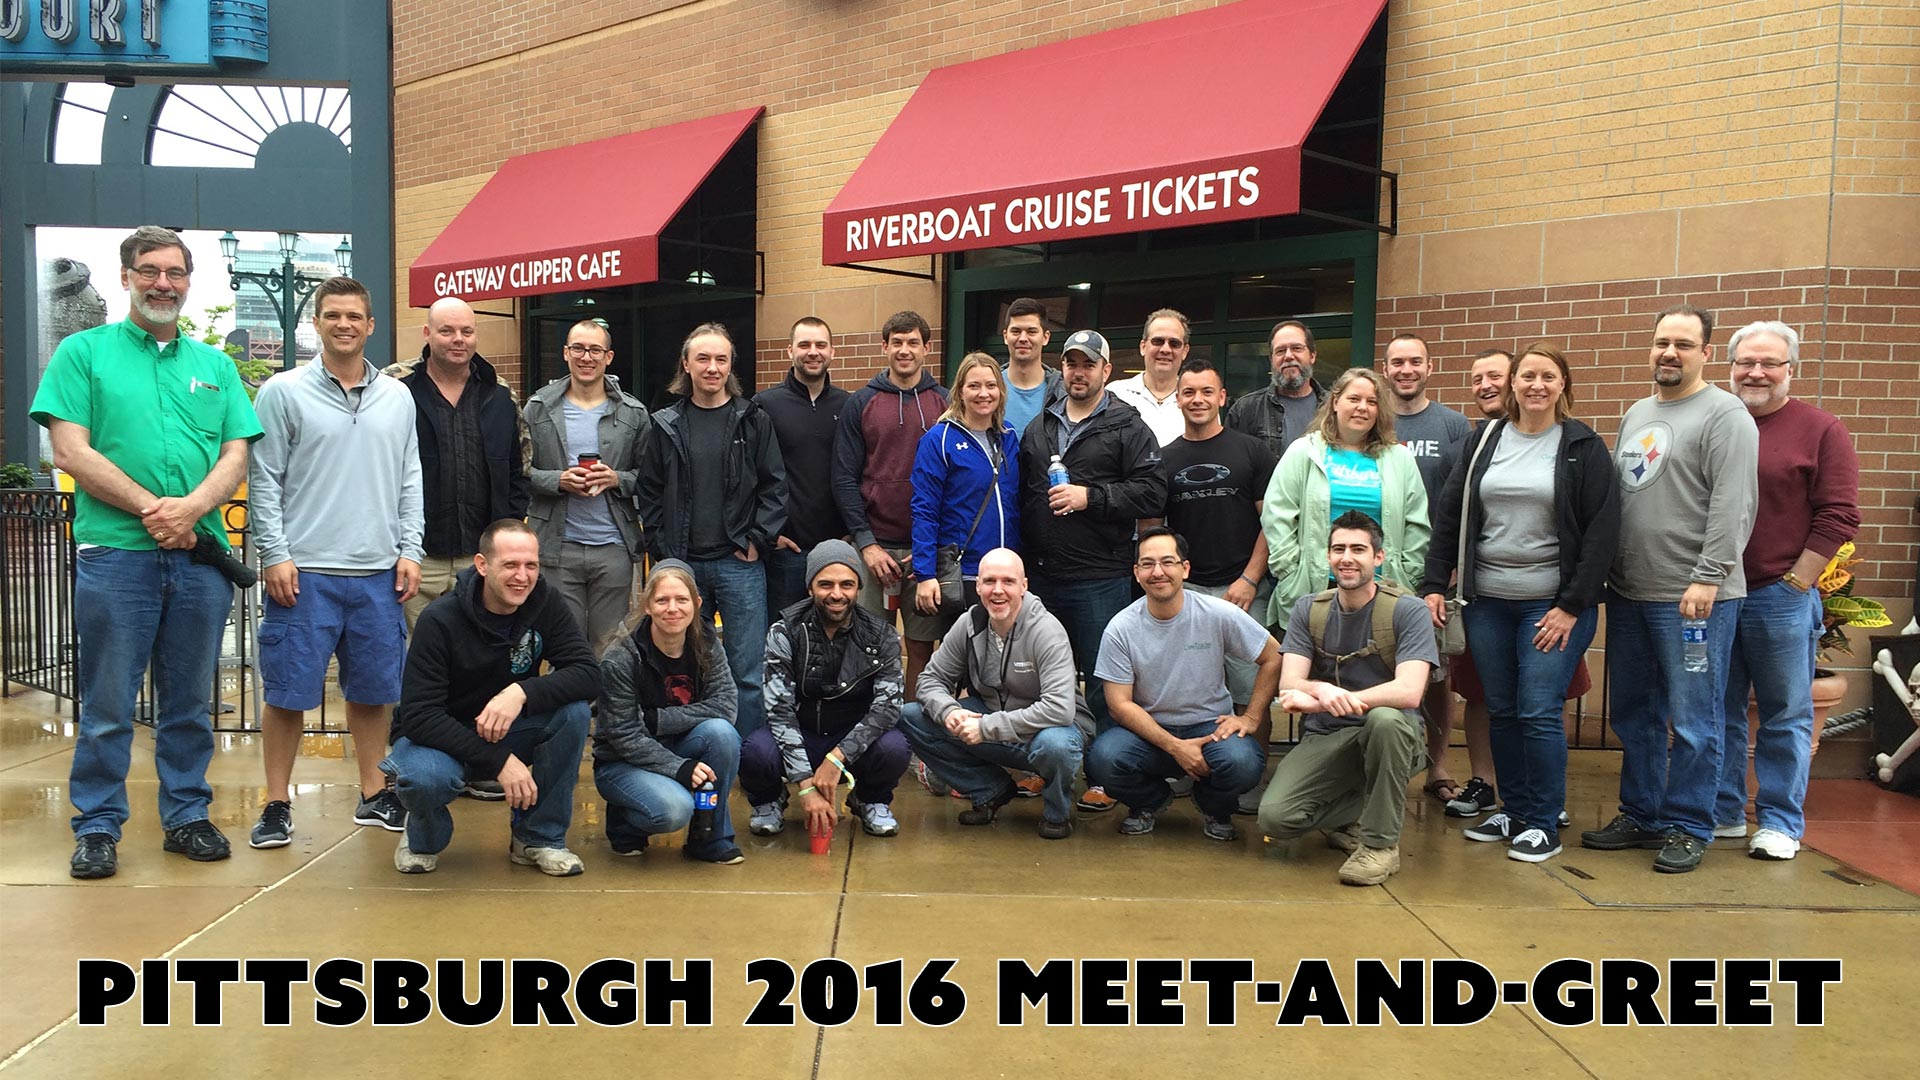 Pittsburgh 2016 Meet And Greet